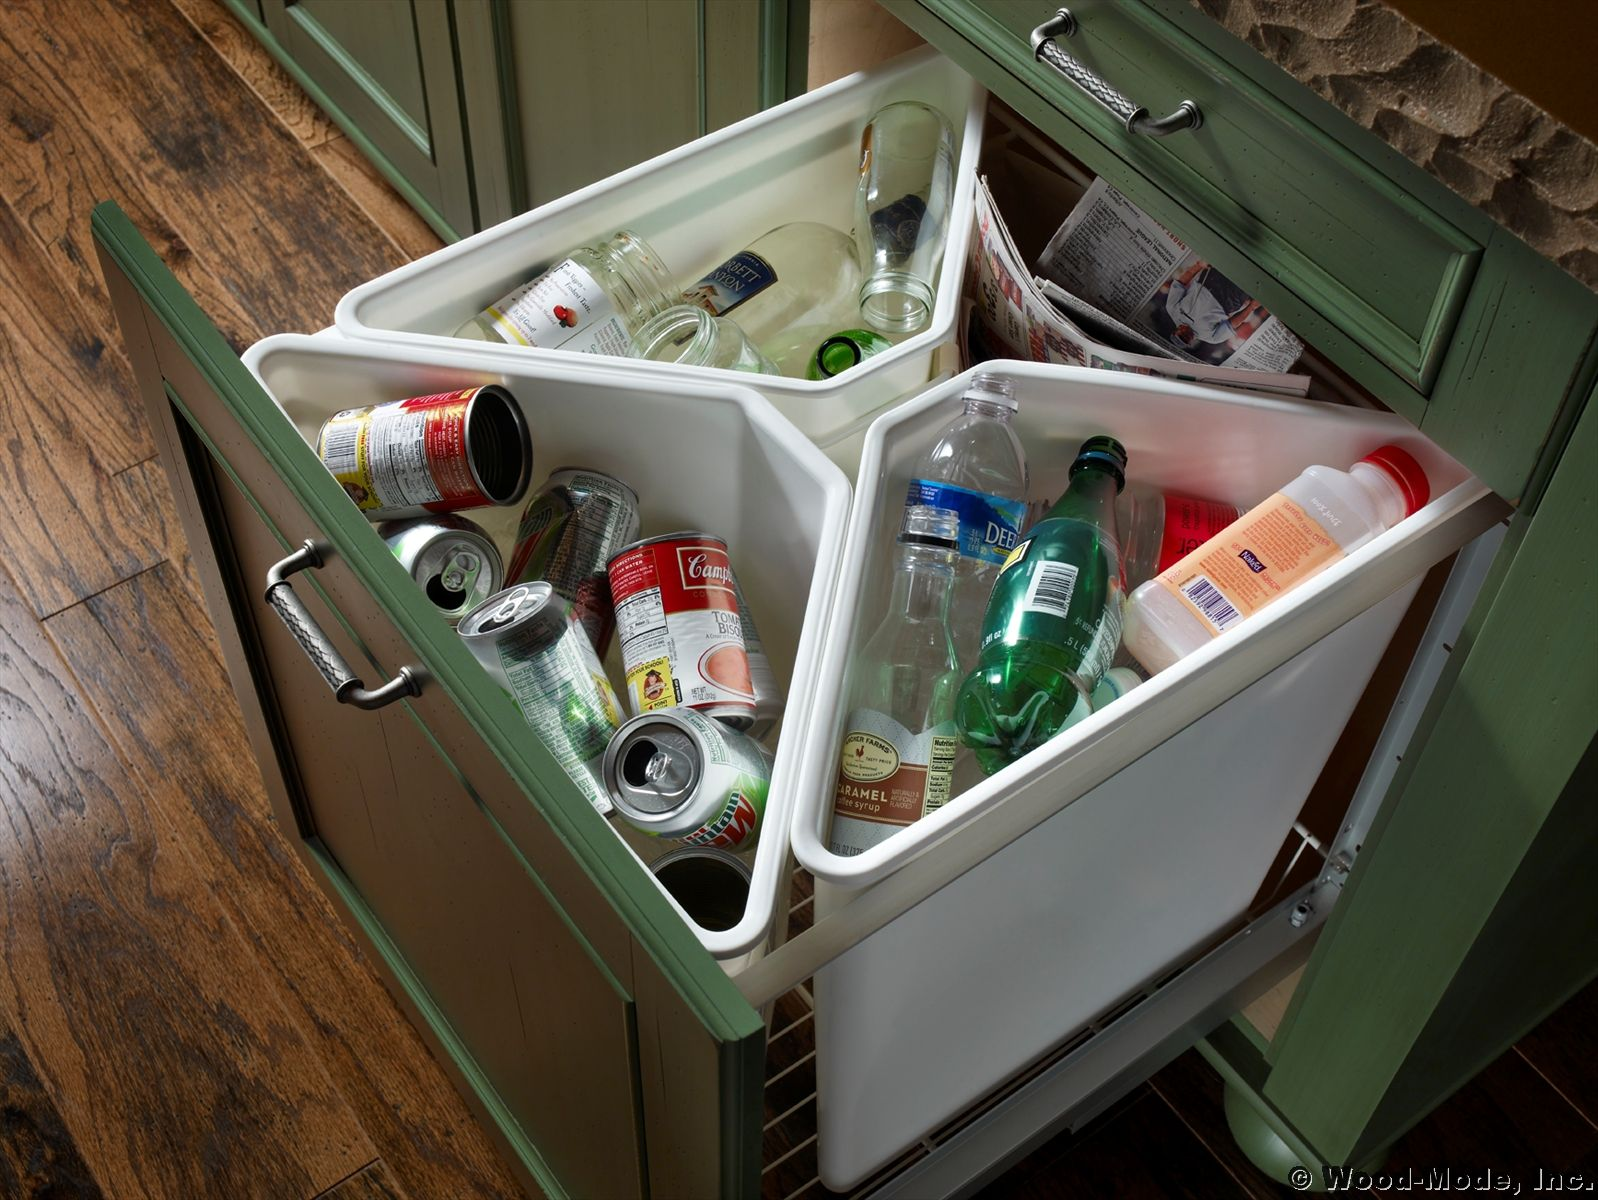 recycling center in kitchen space saving kitchen kitchen storage hacks kitchen storage solutions on kitchen organization recycling id=27665